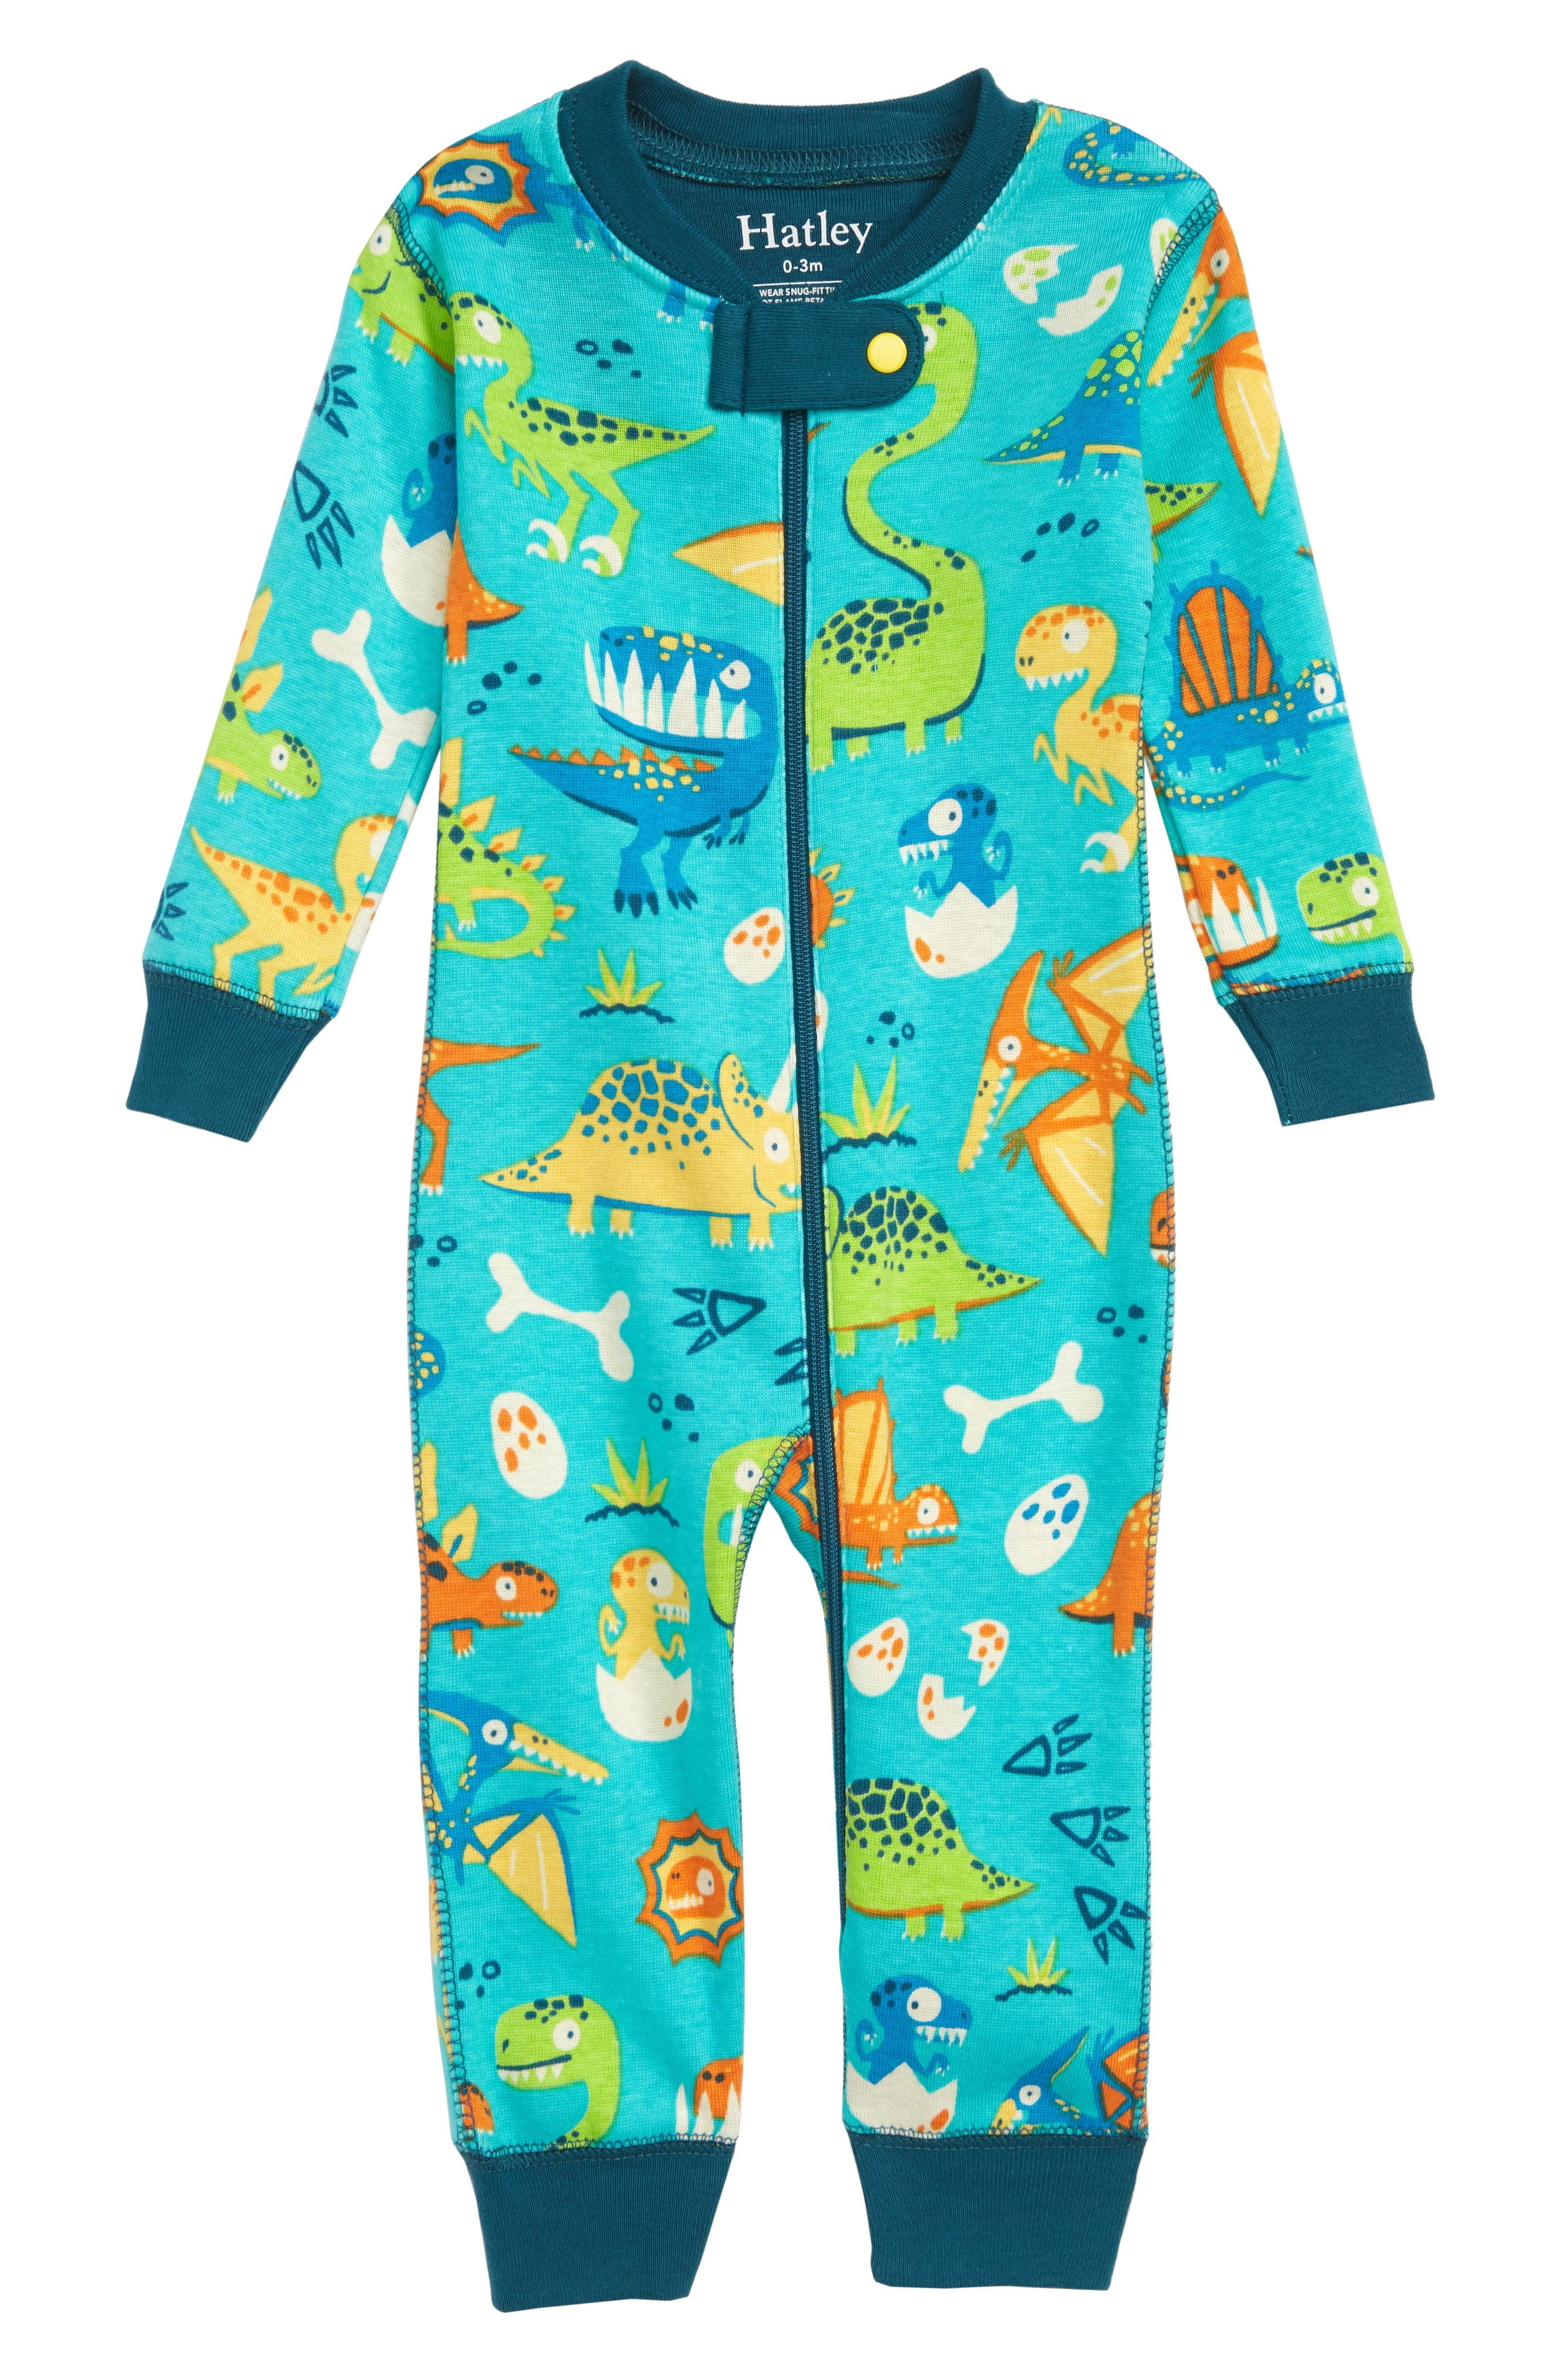 Haltey Organic Cotton Fitted One-Piece Pajamas,                             Main thumbnail 1, color,                             410